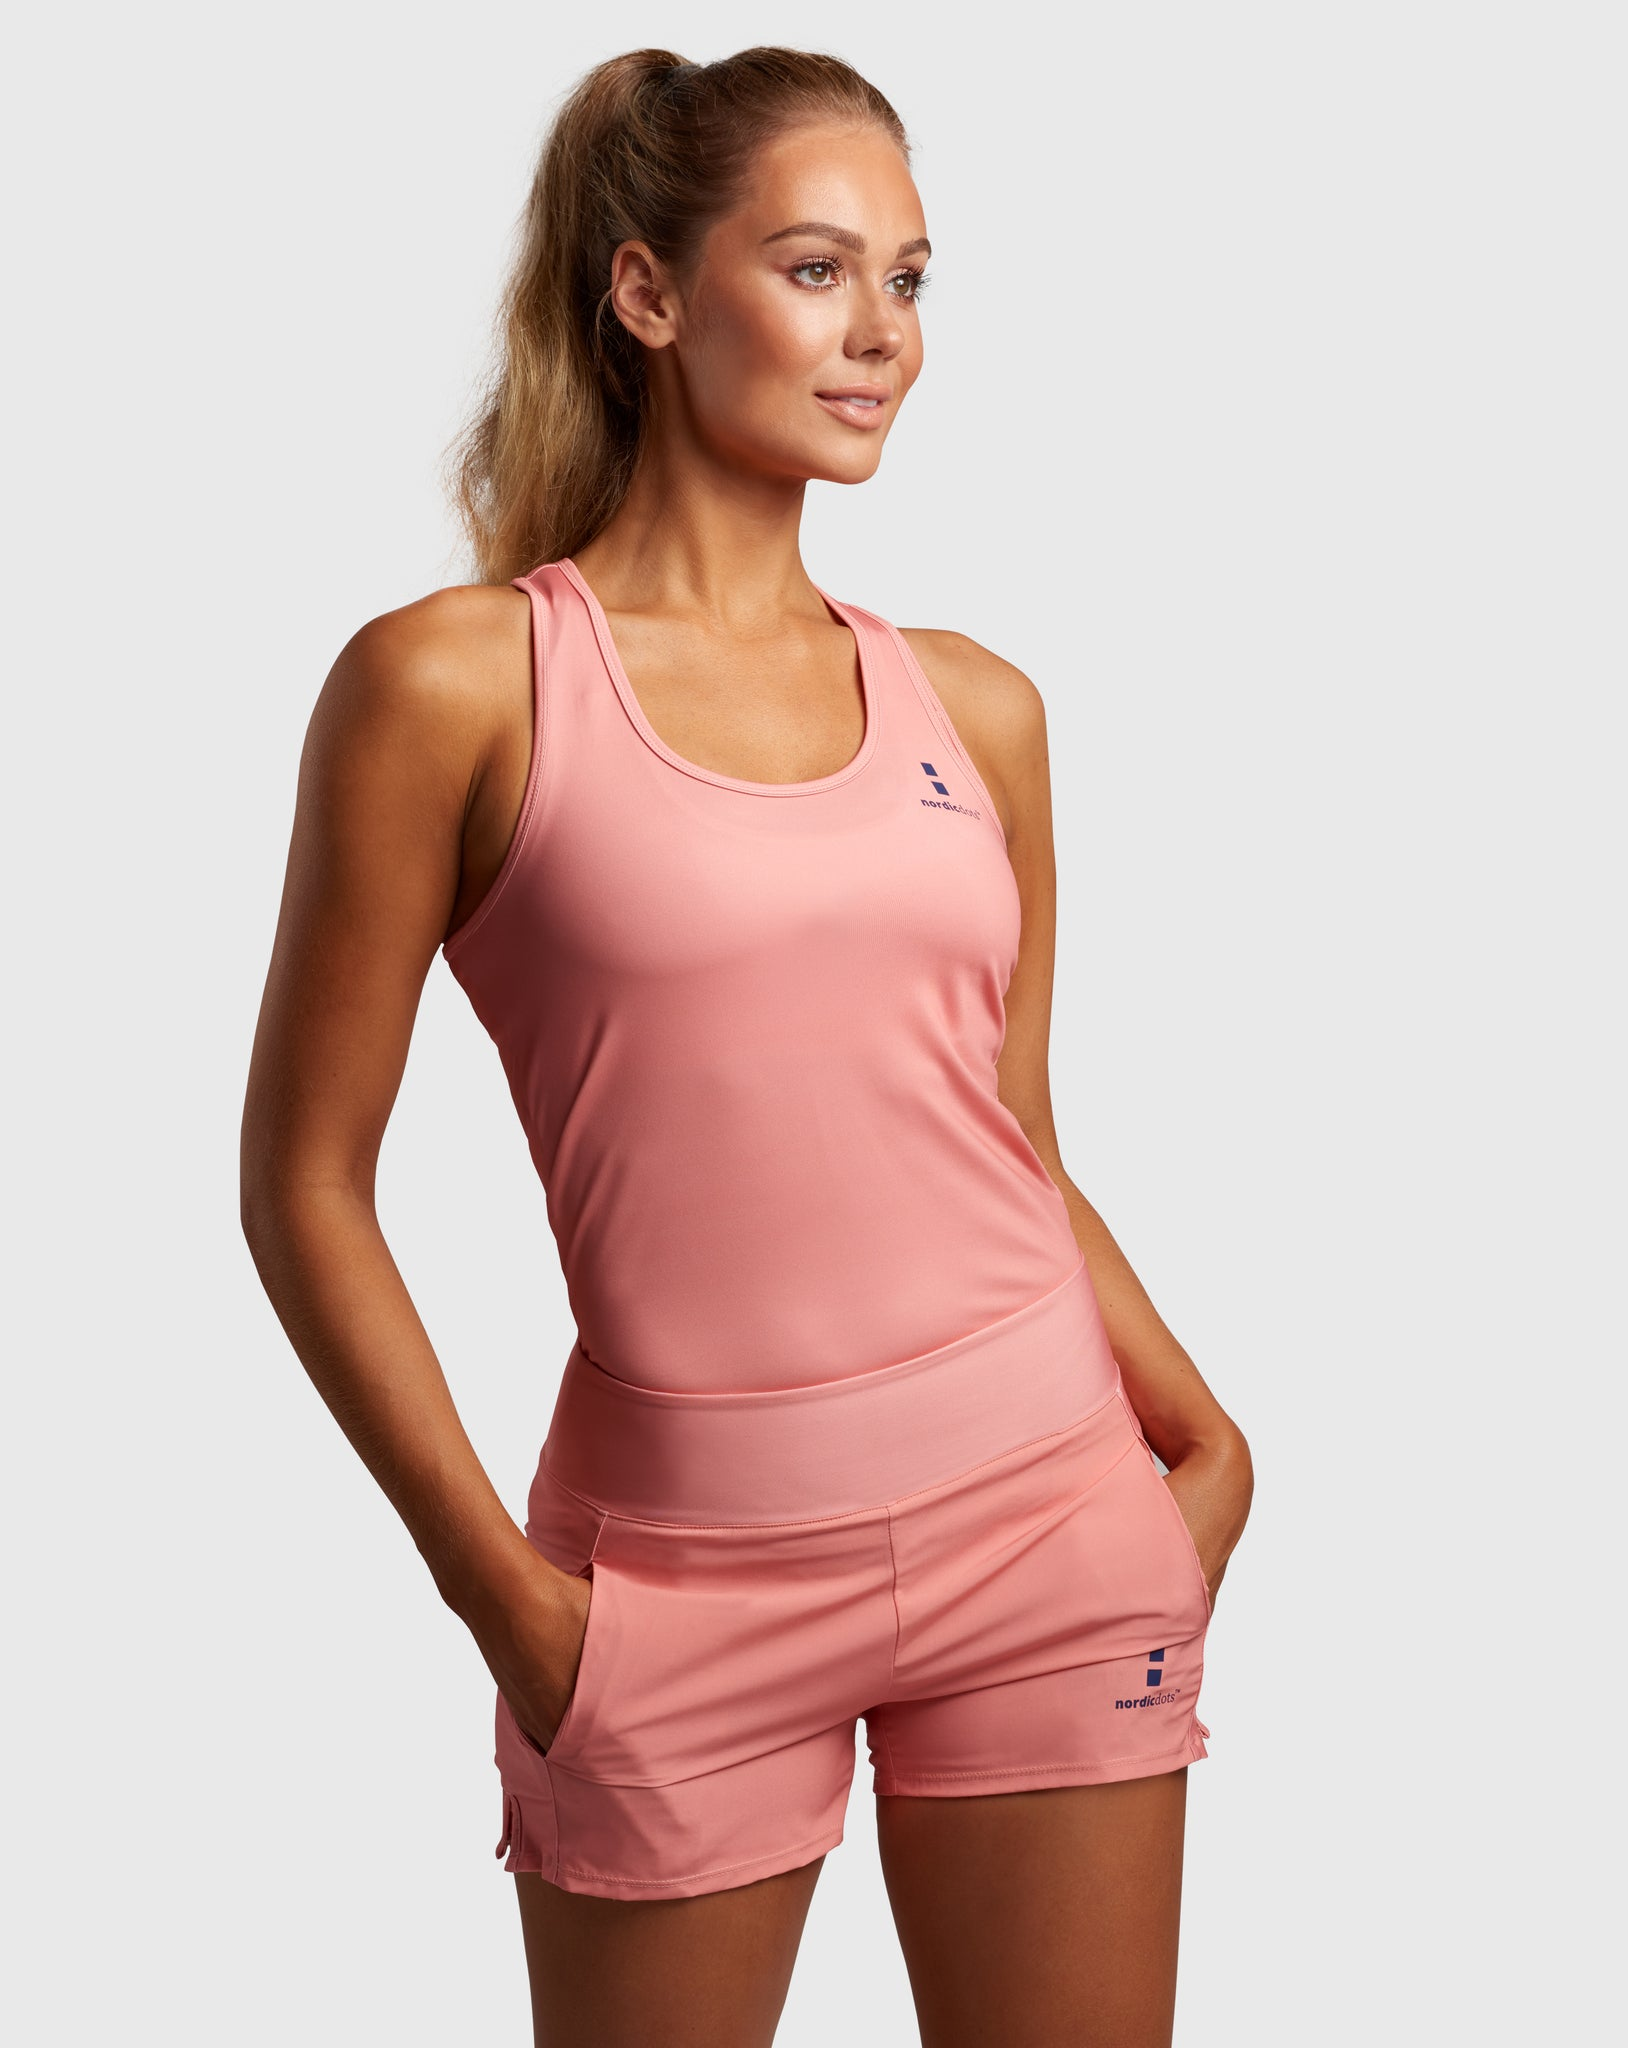 nordicdots tennis tank-top coral